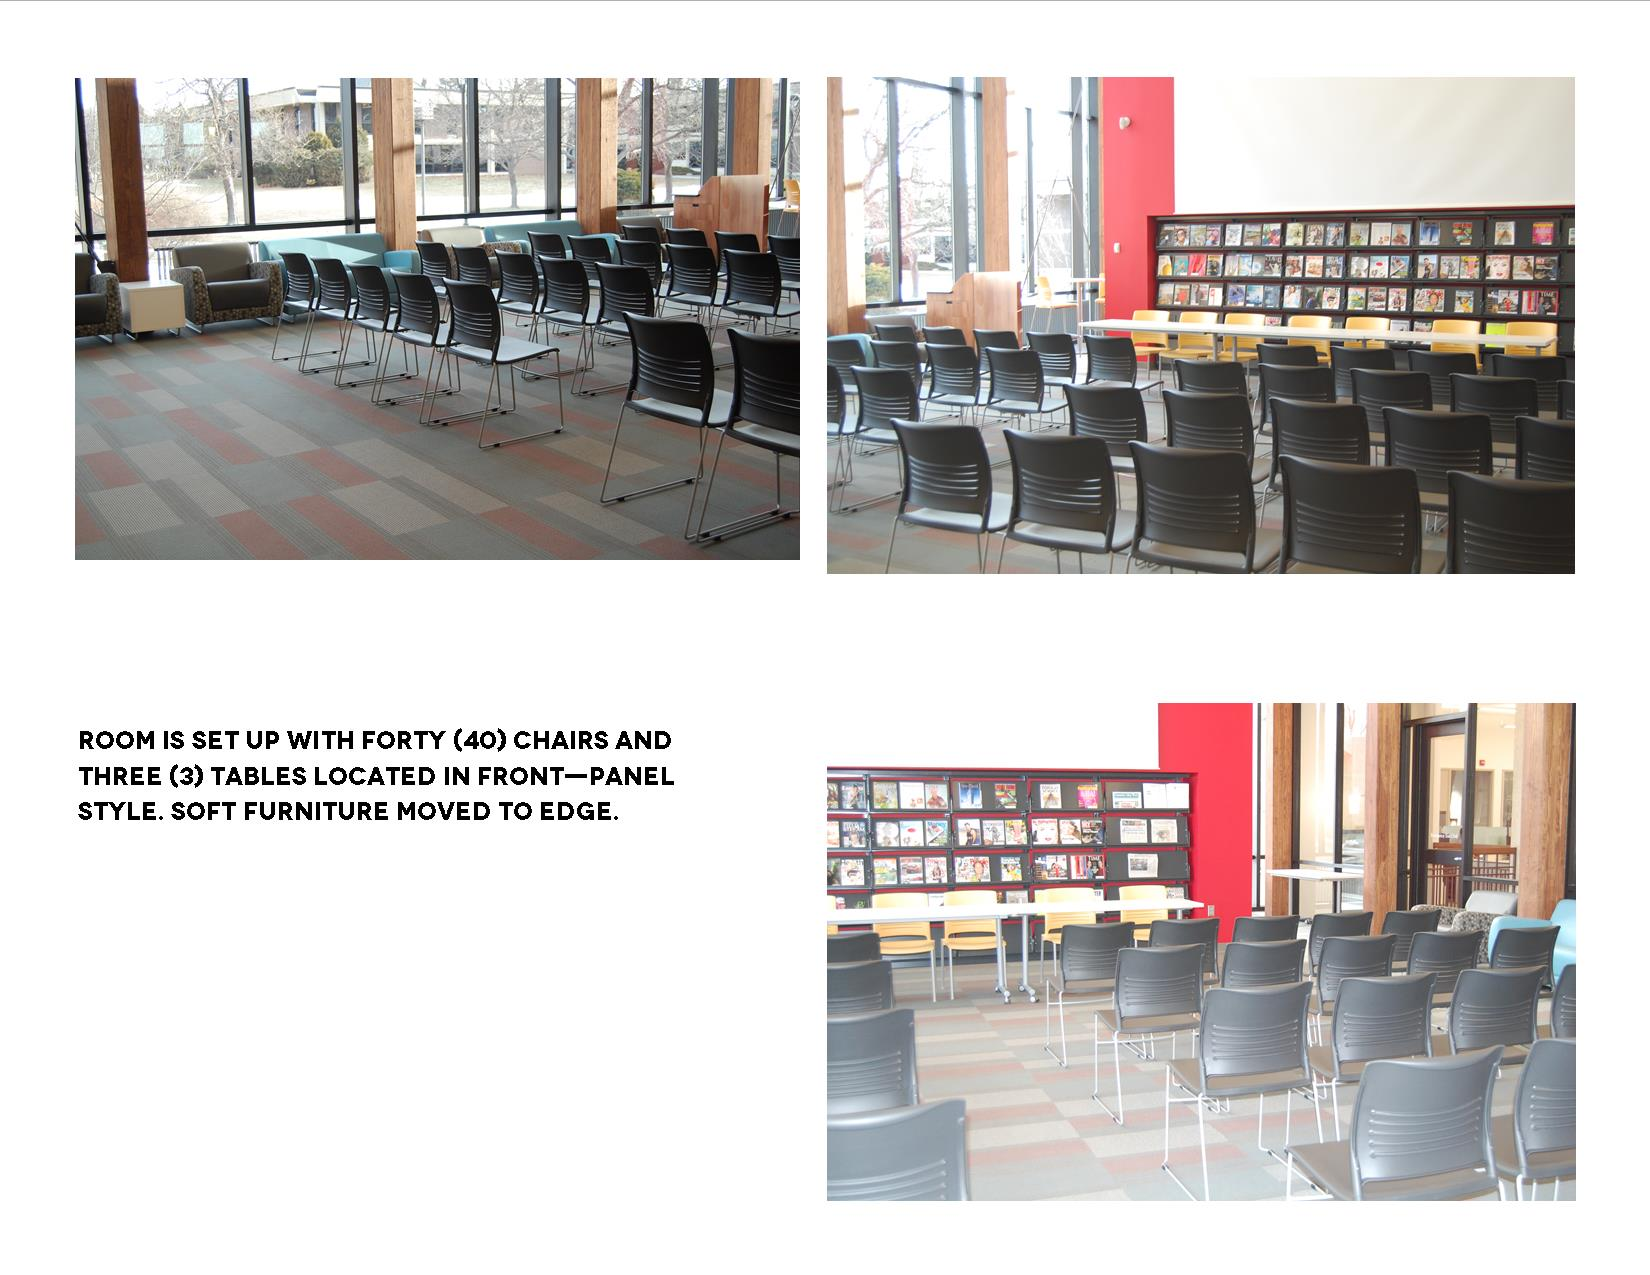 Room is set up with 40 chairs and 3 tables located in front -- panel style. Soft furniture moved to edge.